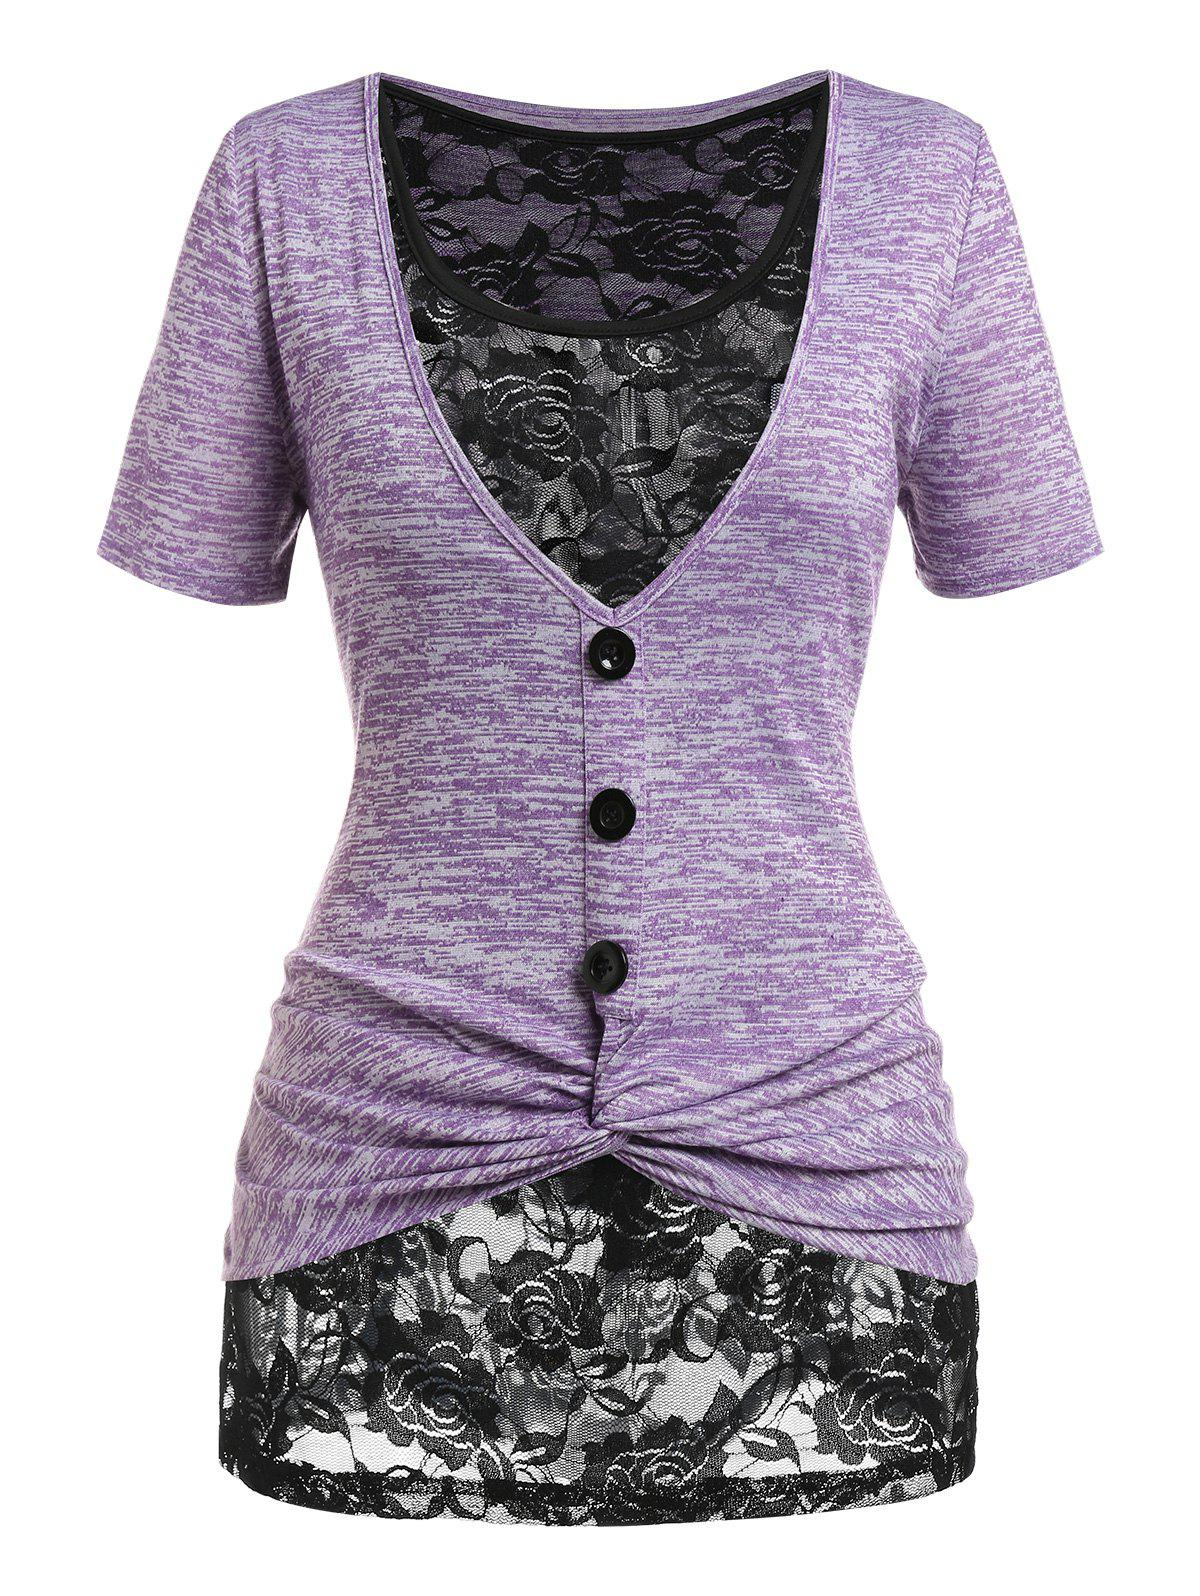 New Plus Size Twist Space Dye Tee and Lace Tank Top Set